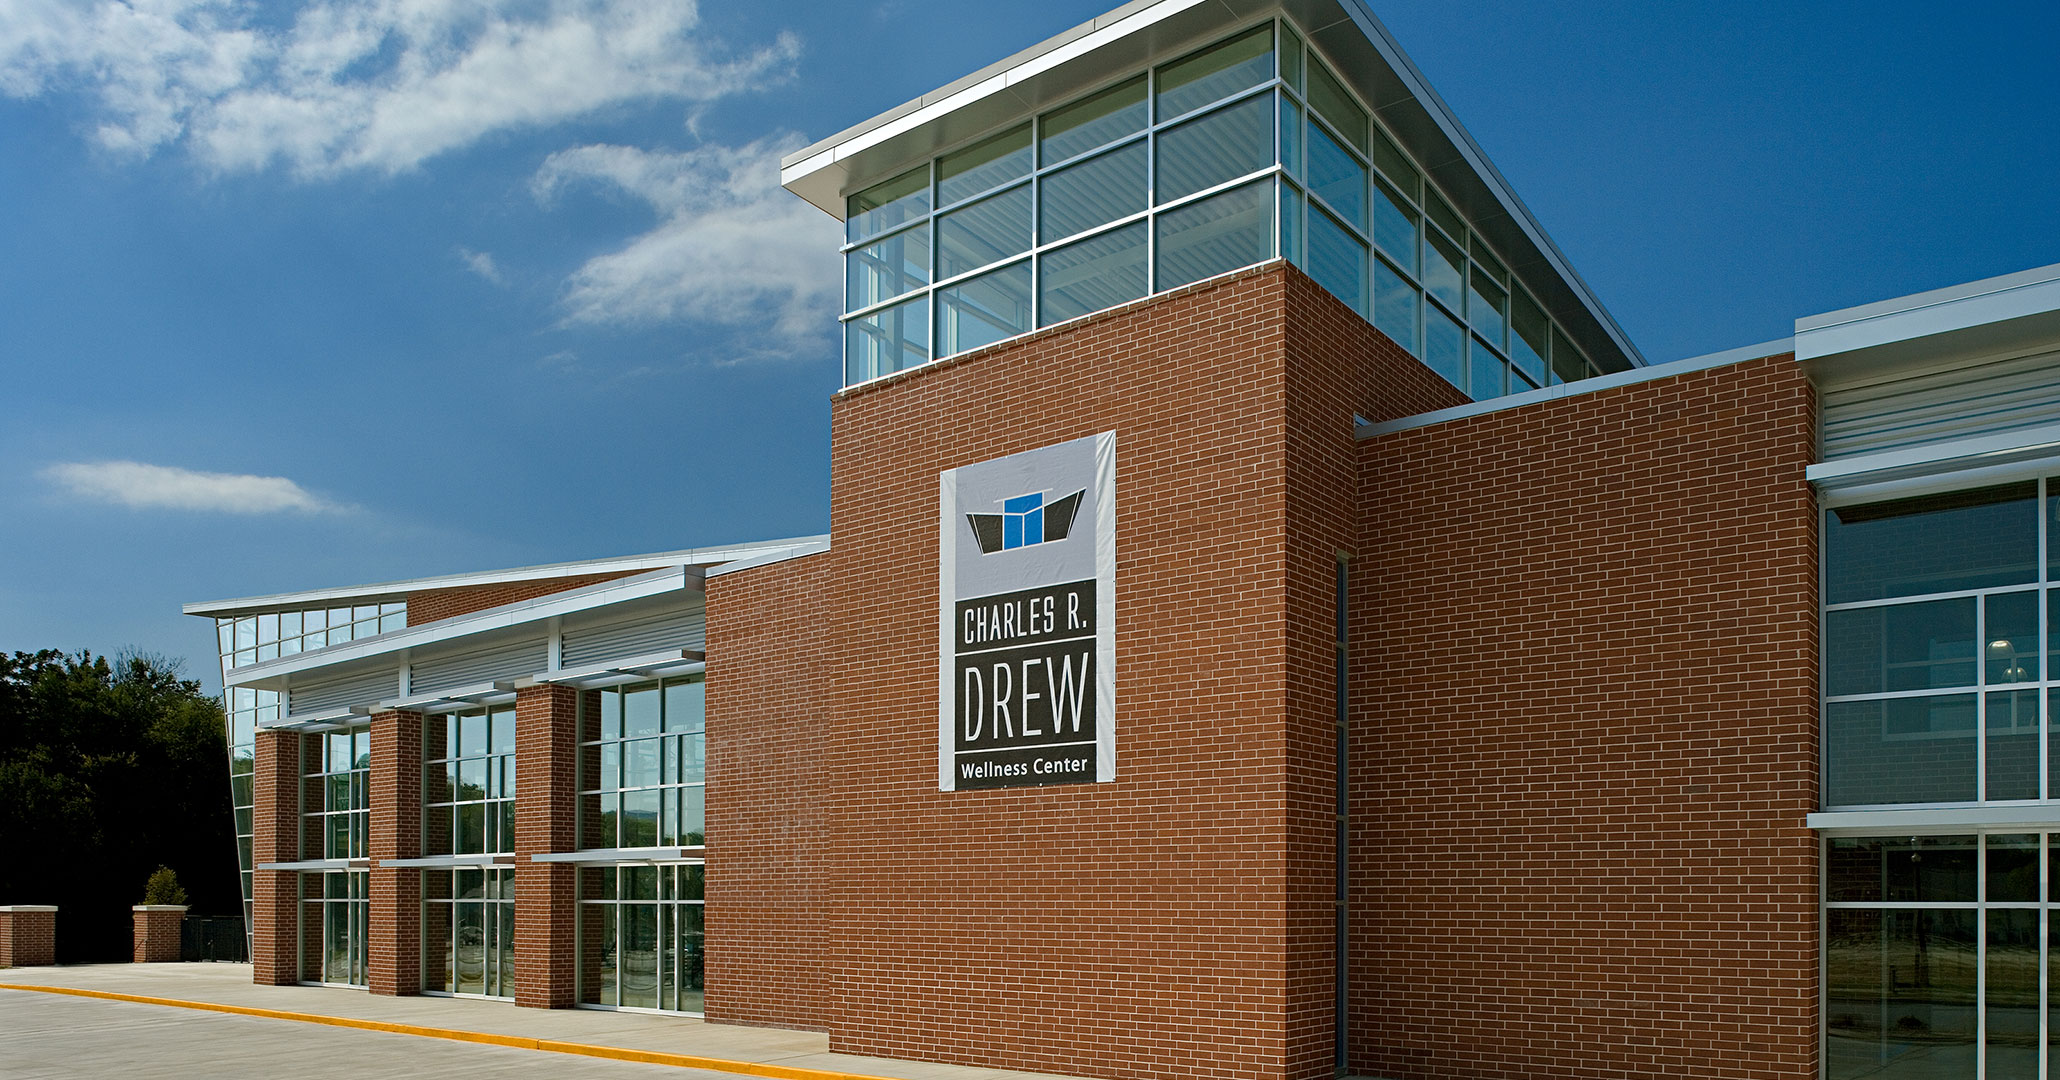 City of Columbia worked with Boudreaux architects to design the interiors at Drew Wellness Center.